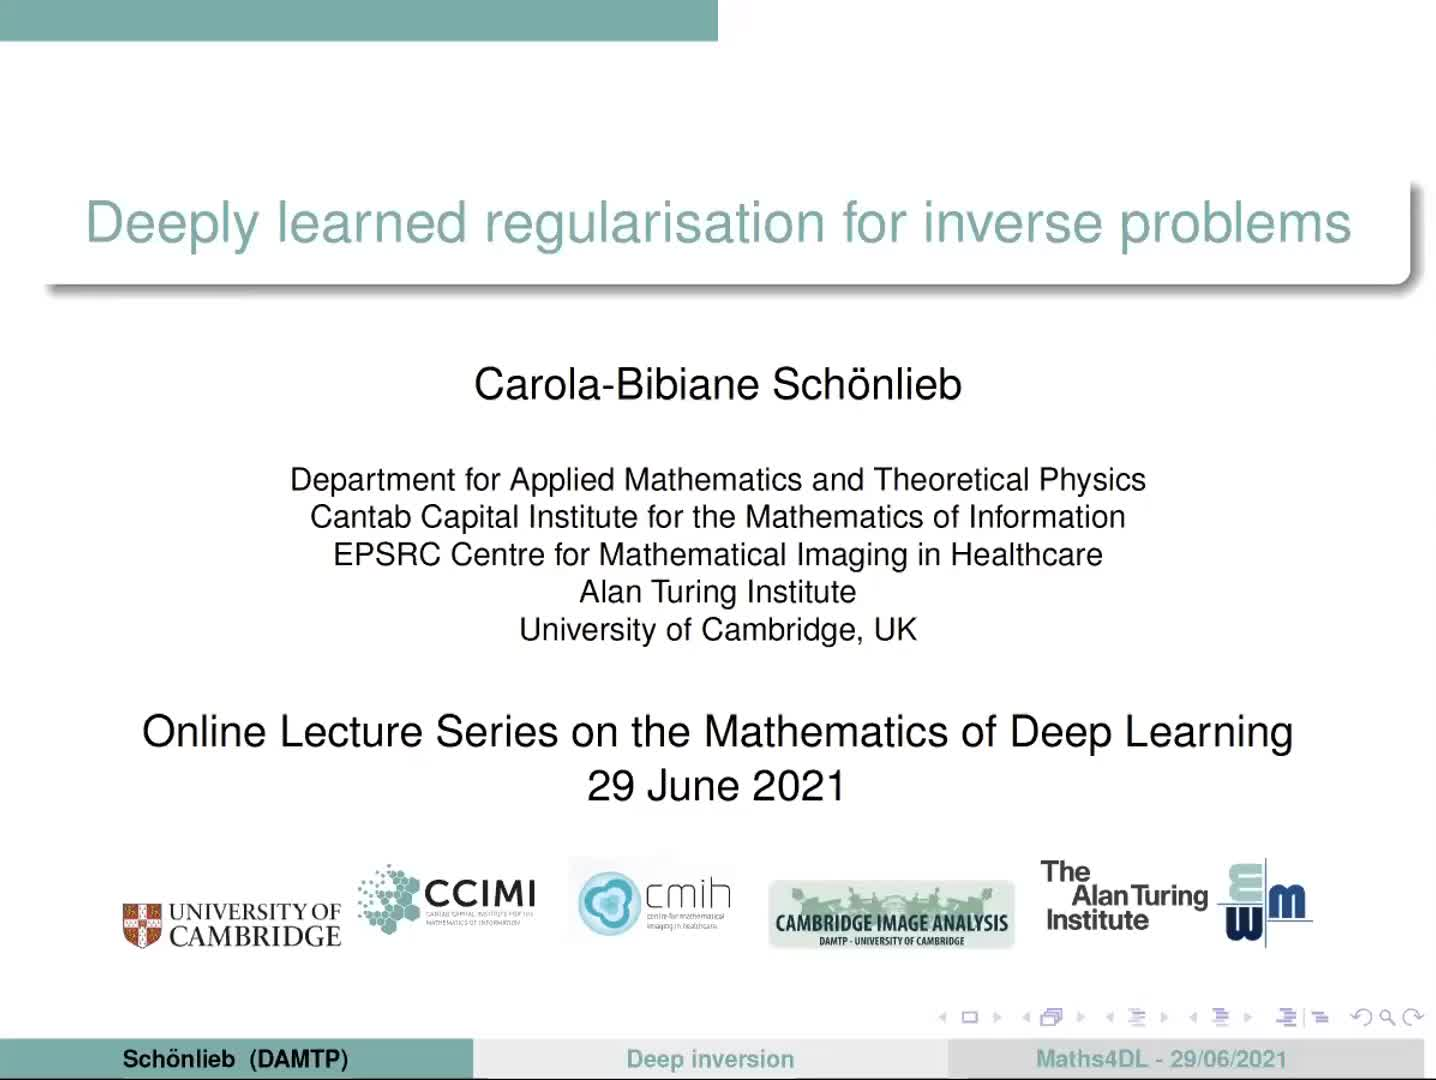 Deeply learned regularisation for inverse problems preview image